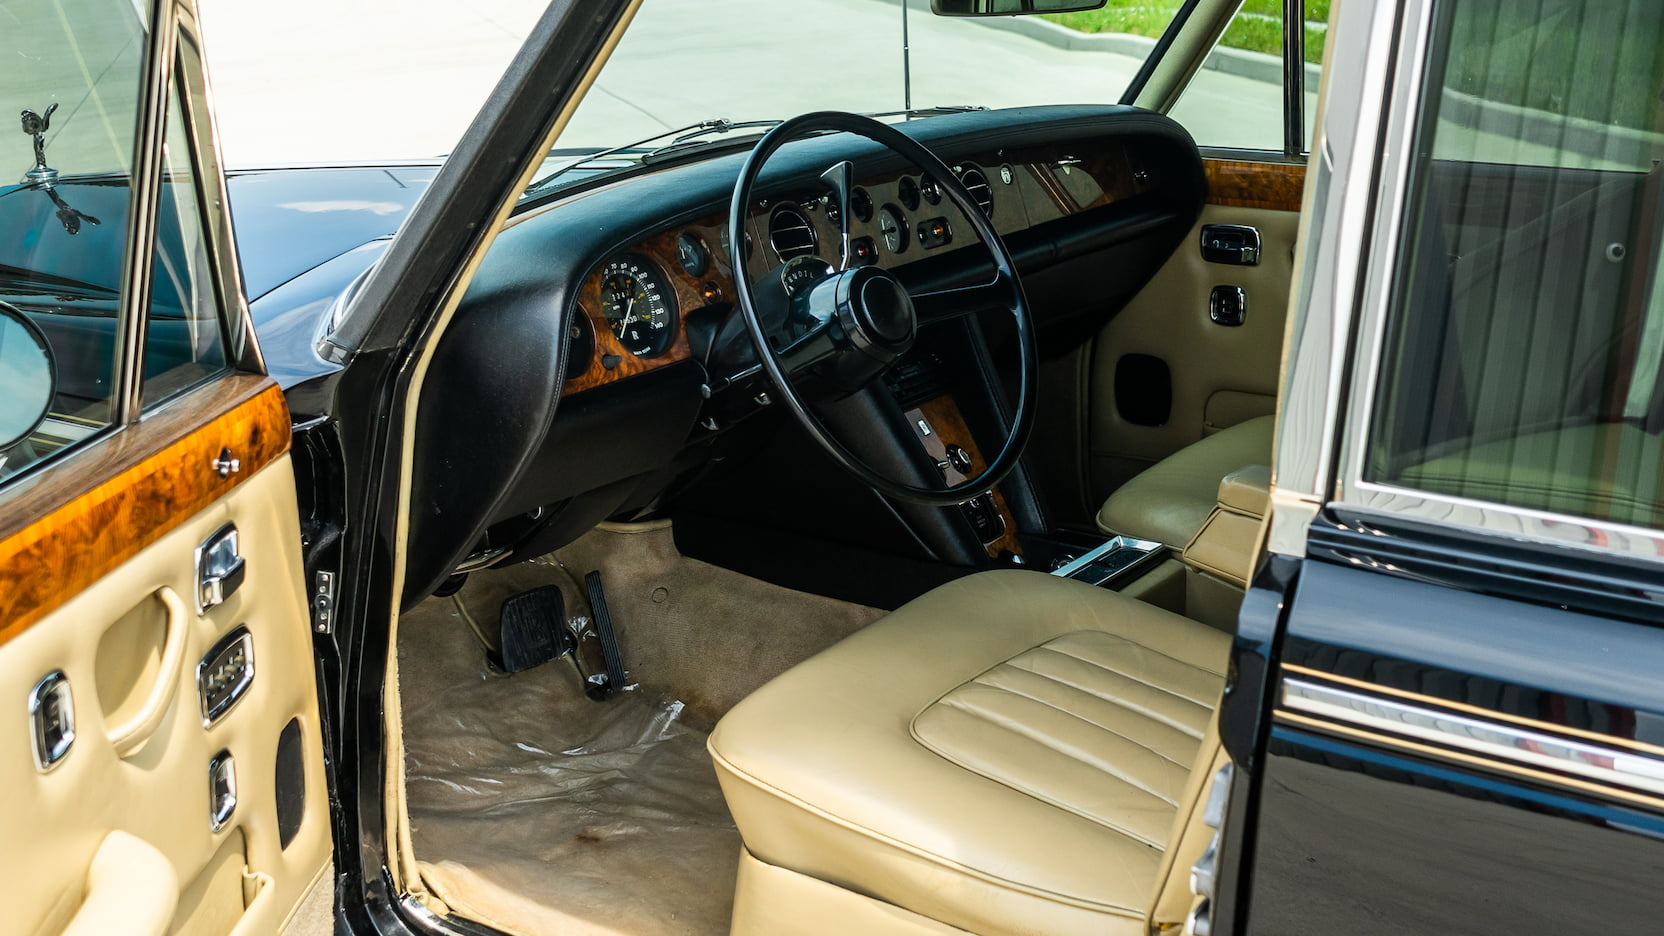 1971 Rolls-Royce Silver Shadow interior